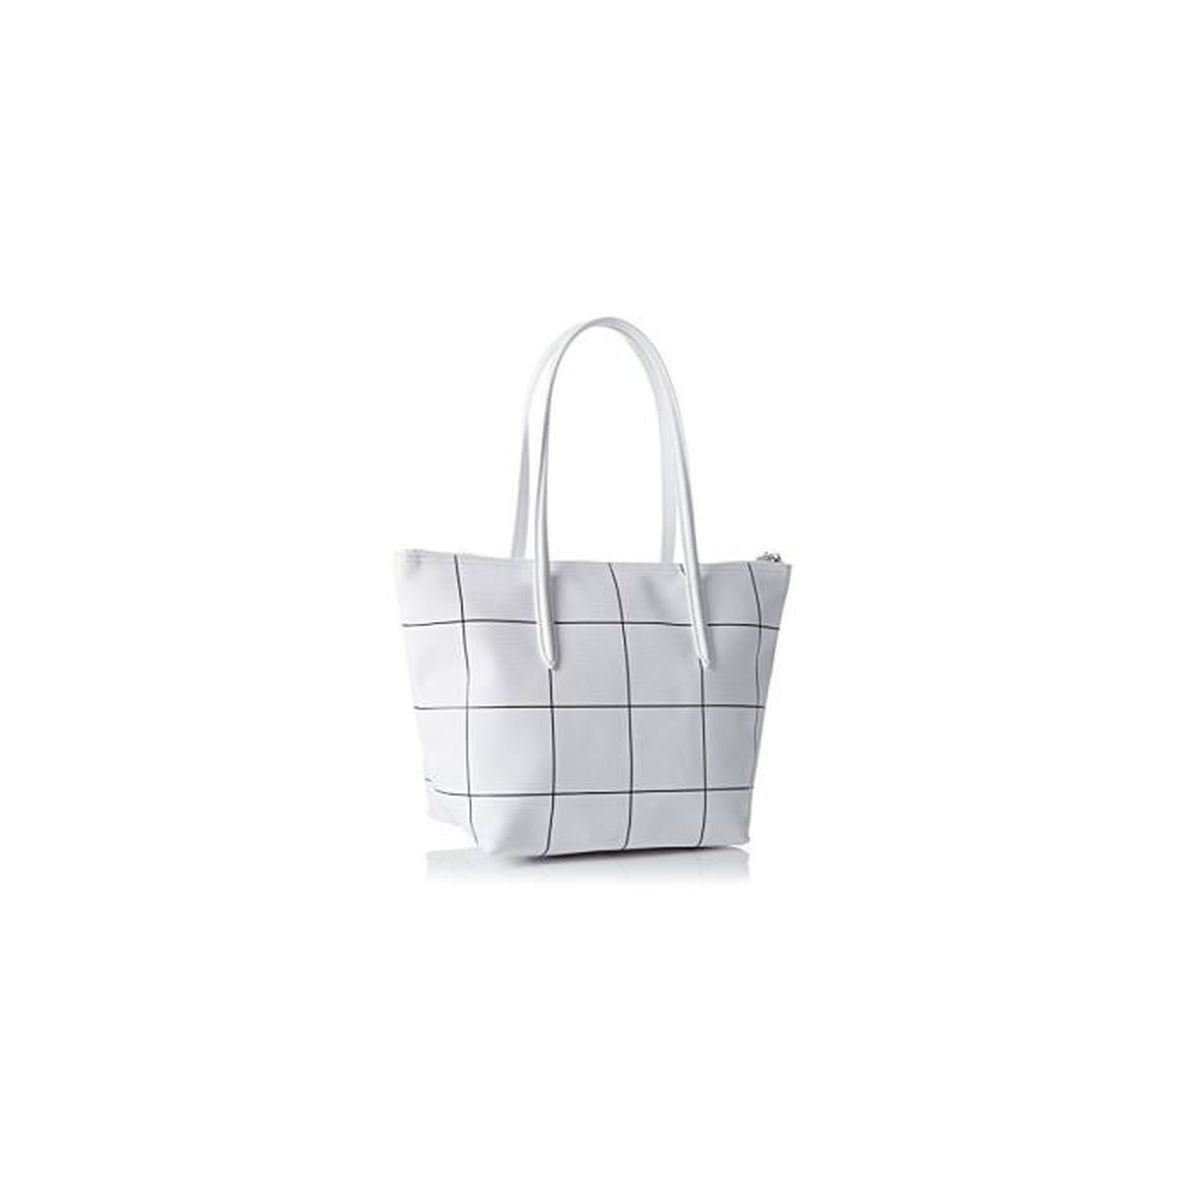 76d69b27d6 Lacoste - Sac cabas shopping (NF2032CF) white square 943 taille 36 ...